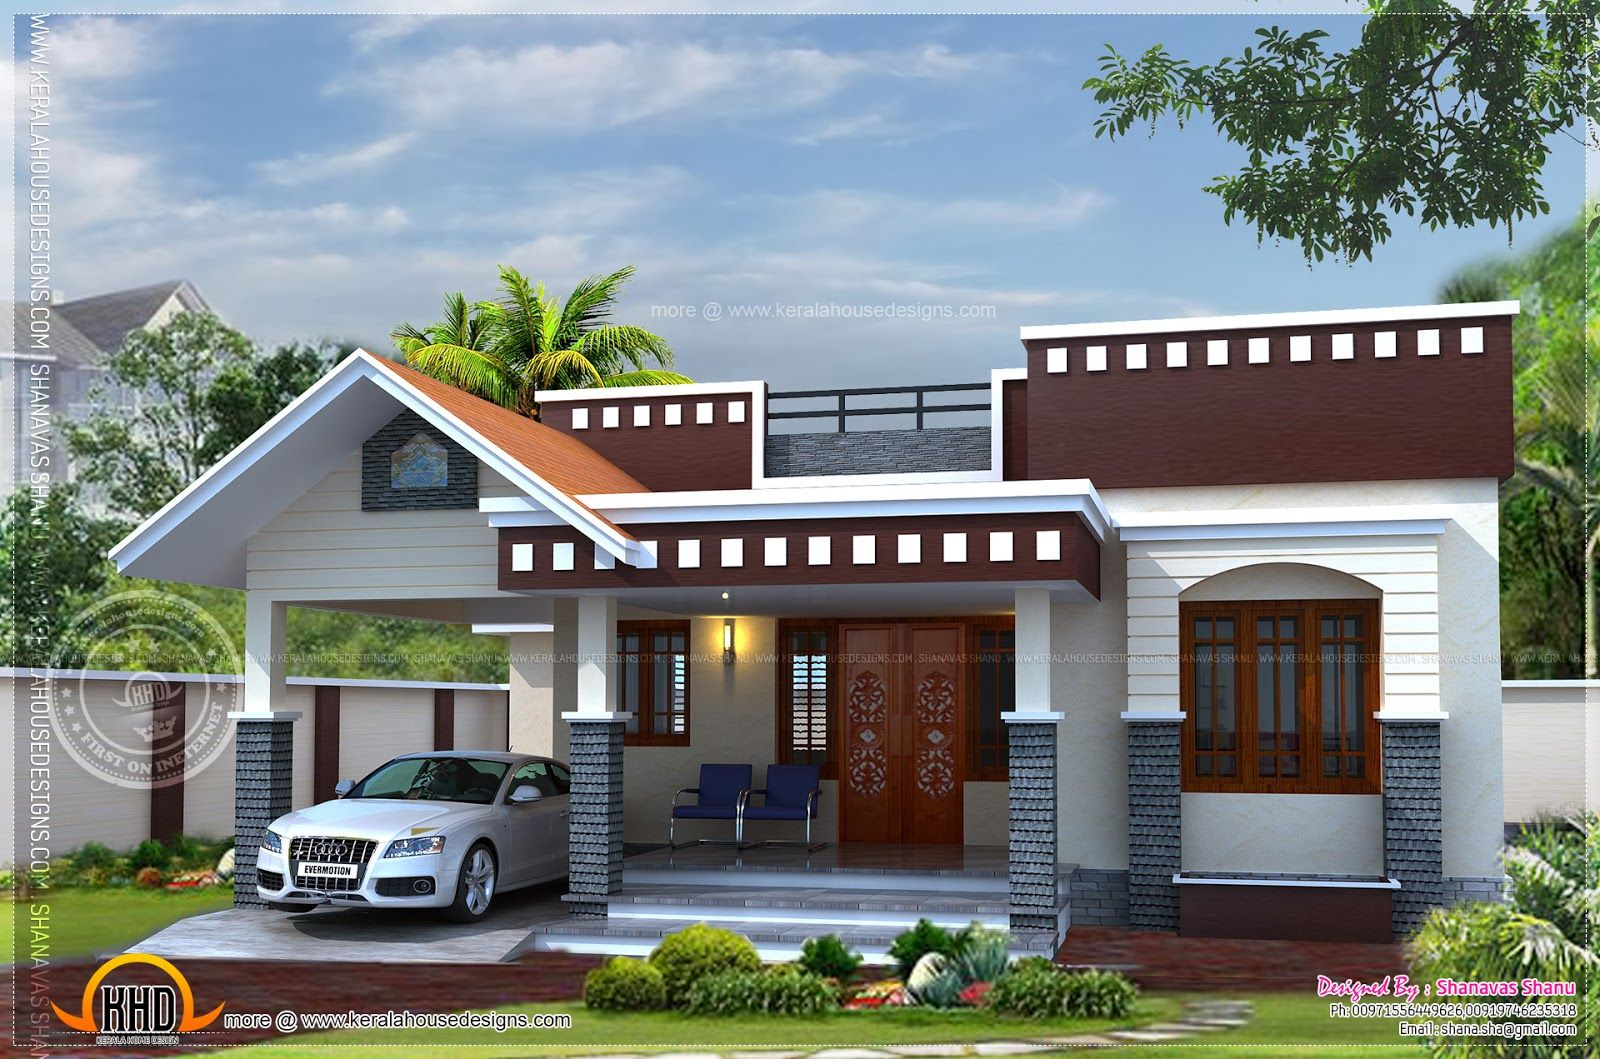 Admirable Home Plan Small House Kerala Home Design Floor Plans Floor House Largest Home Design Picture Inspirations Pitcheantrous